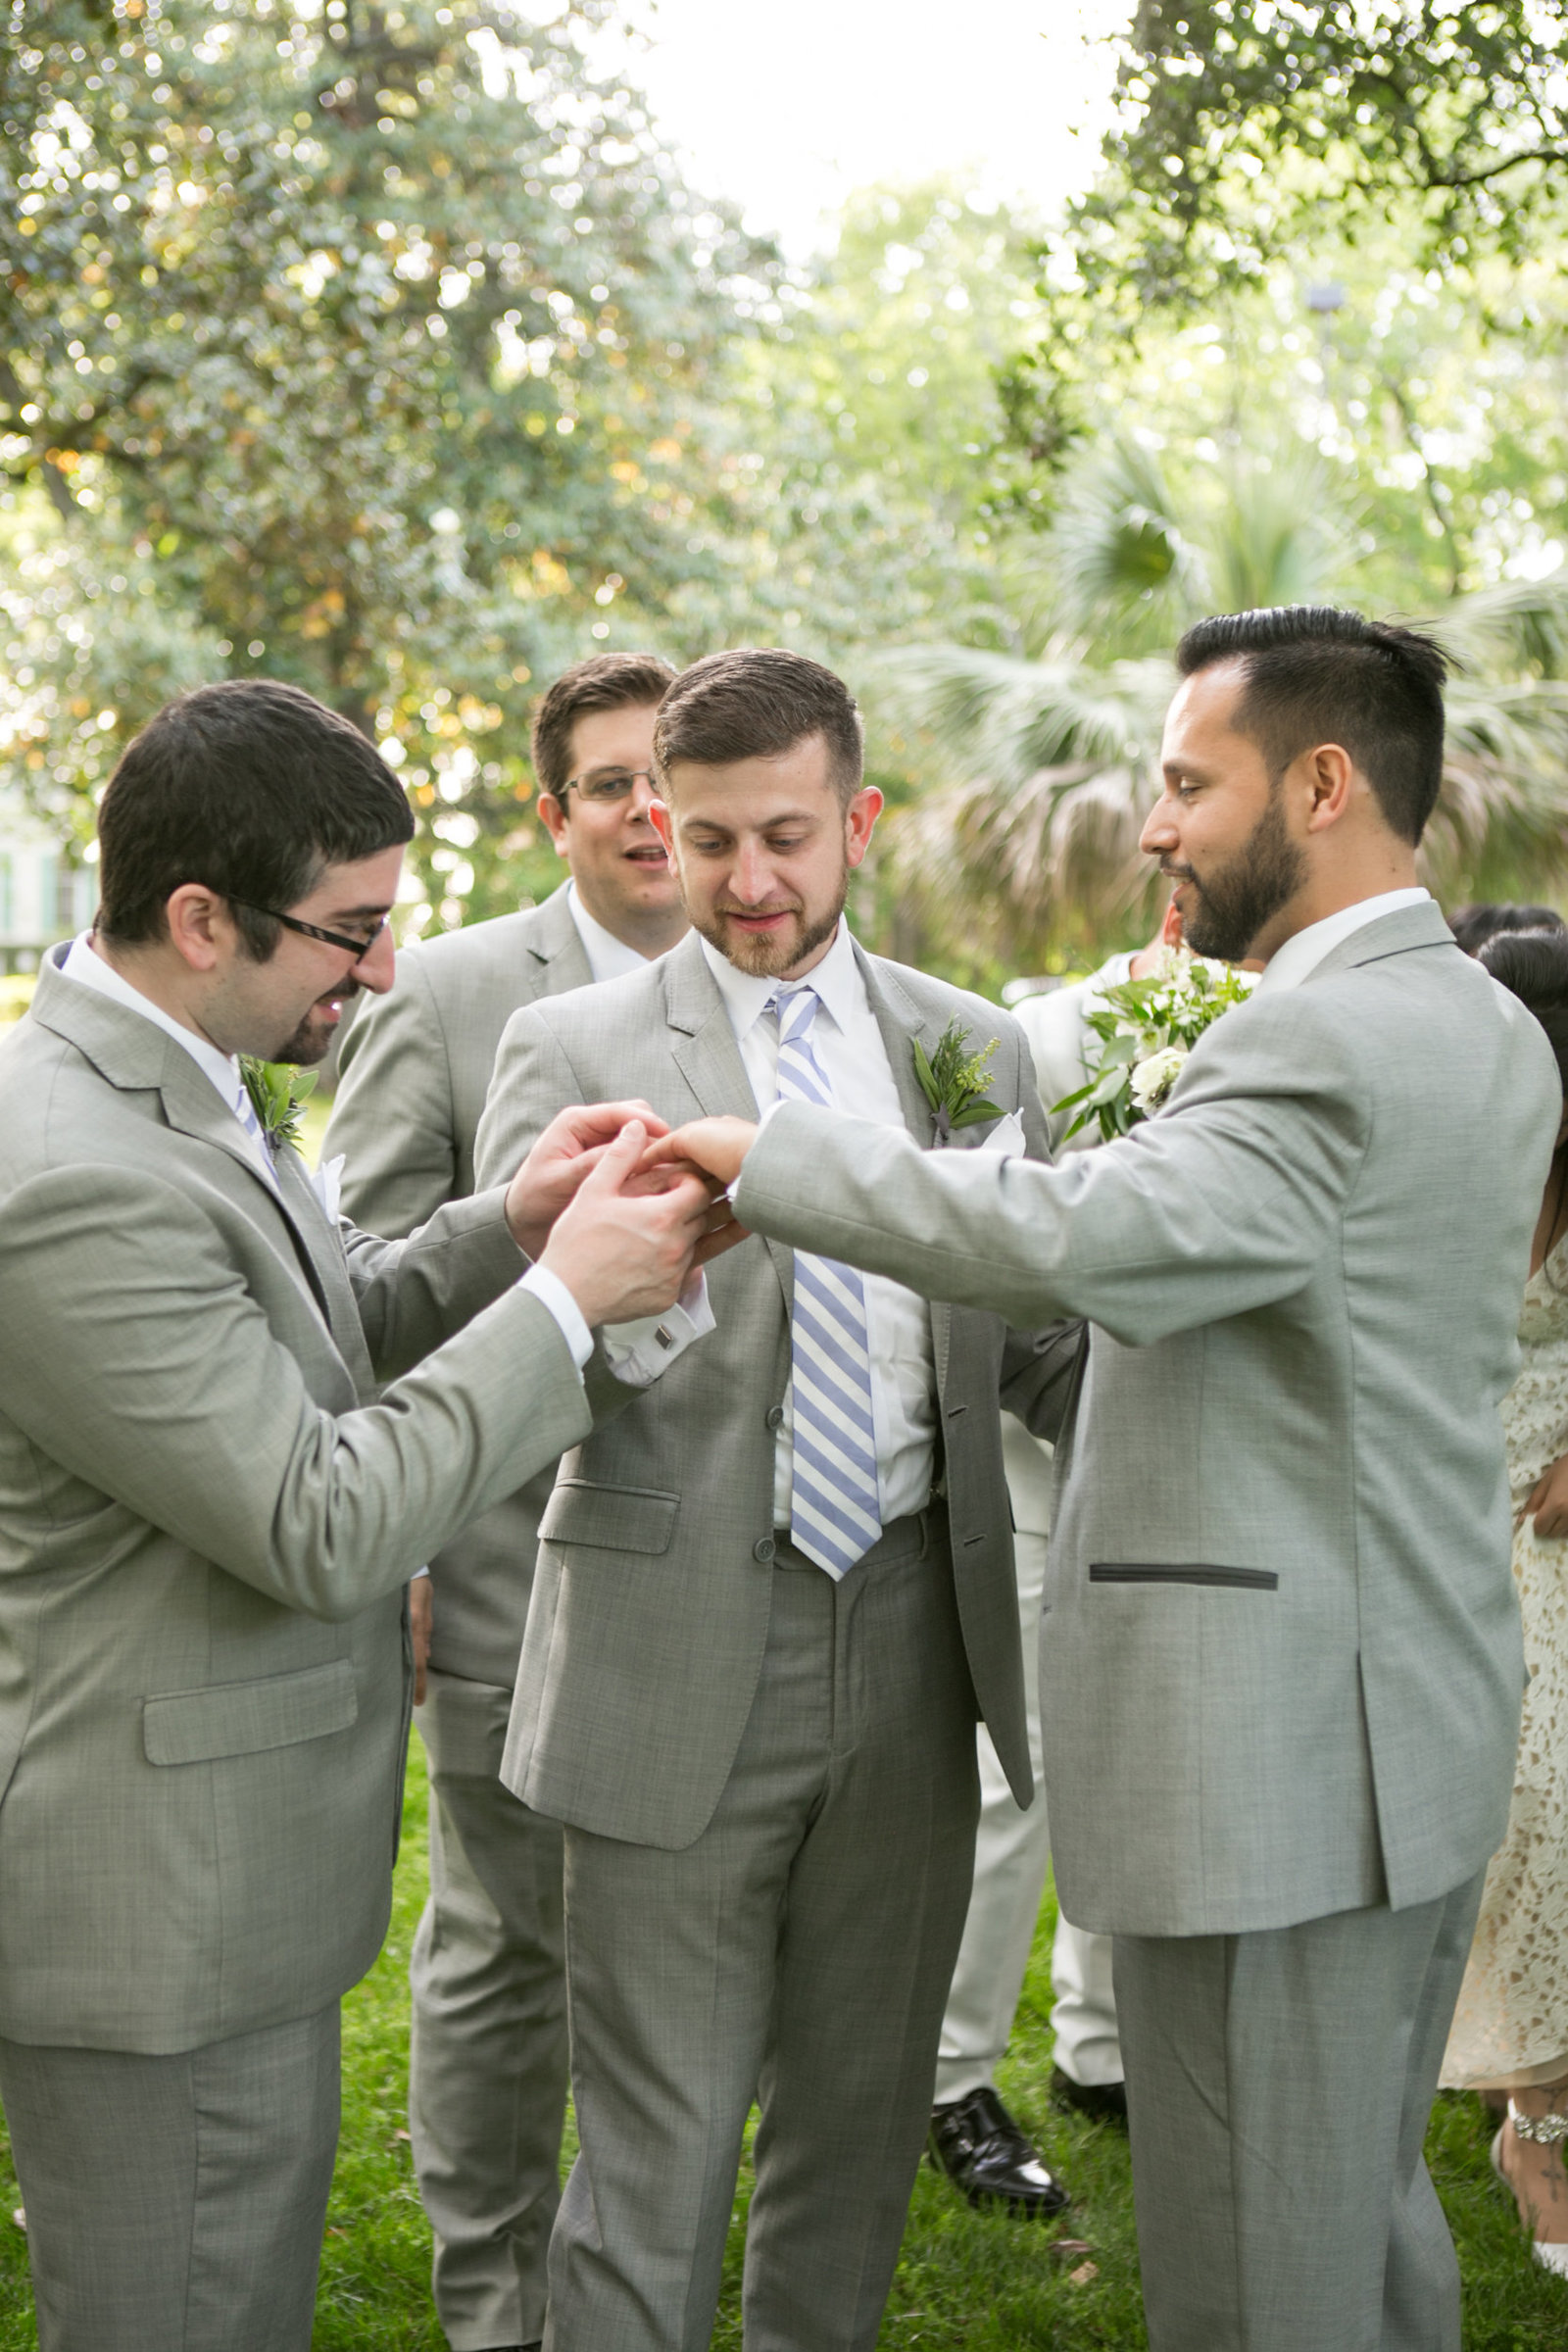 groomsmen holding hand of groom and looking at his new wedding band